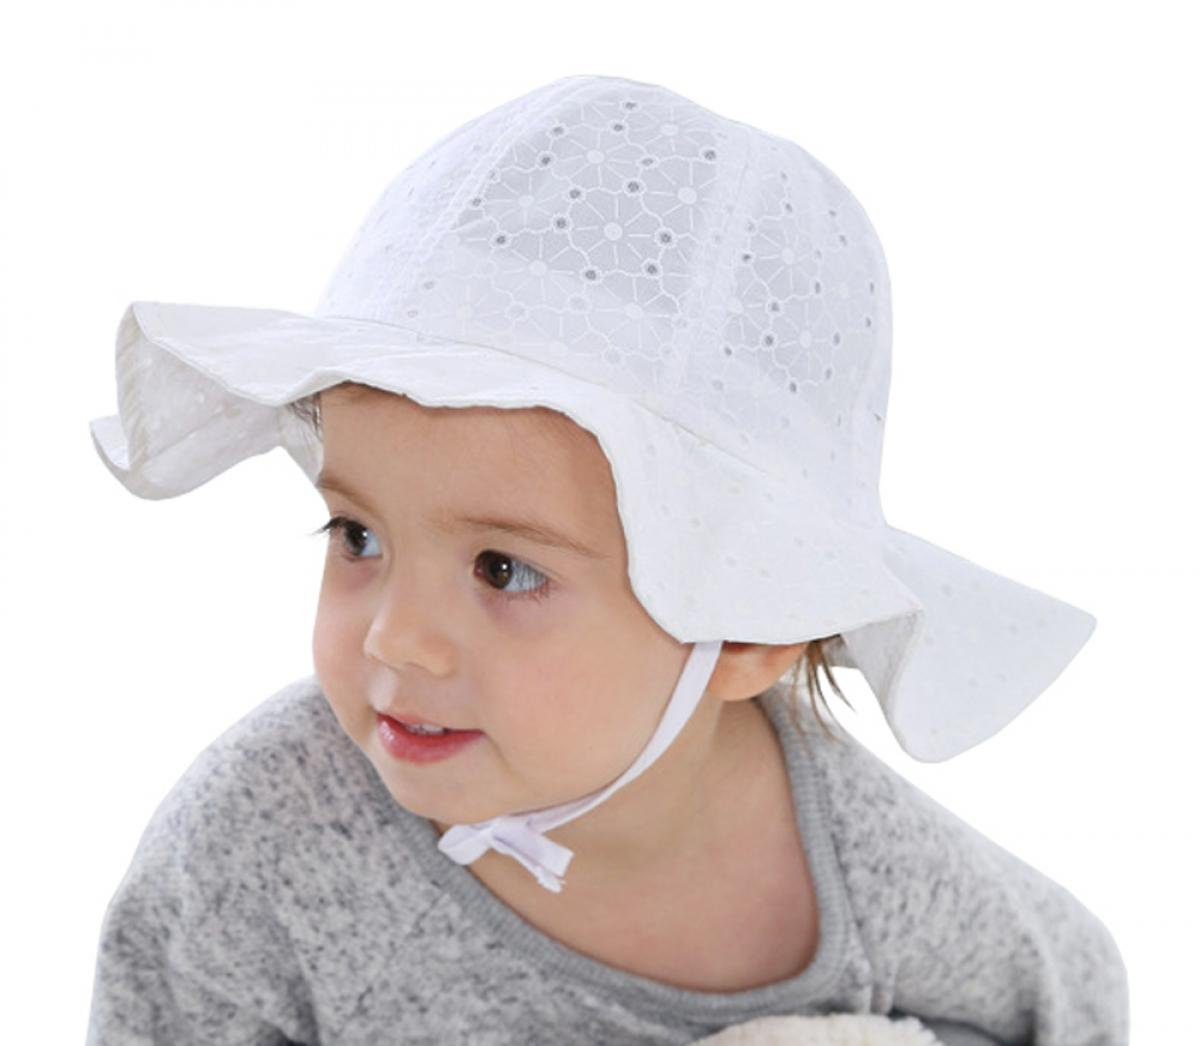 Amazon.com  WODISON Baby Toddler Girls Sun Hat Summer Protection Cap with  Adjustable Chin Strap White for Kids Christmas Gift Idea  Baby 17f4057acfd